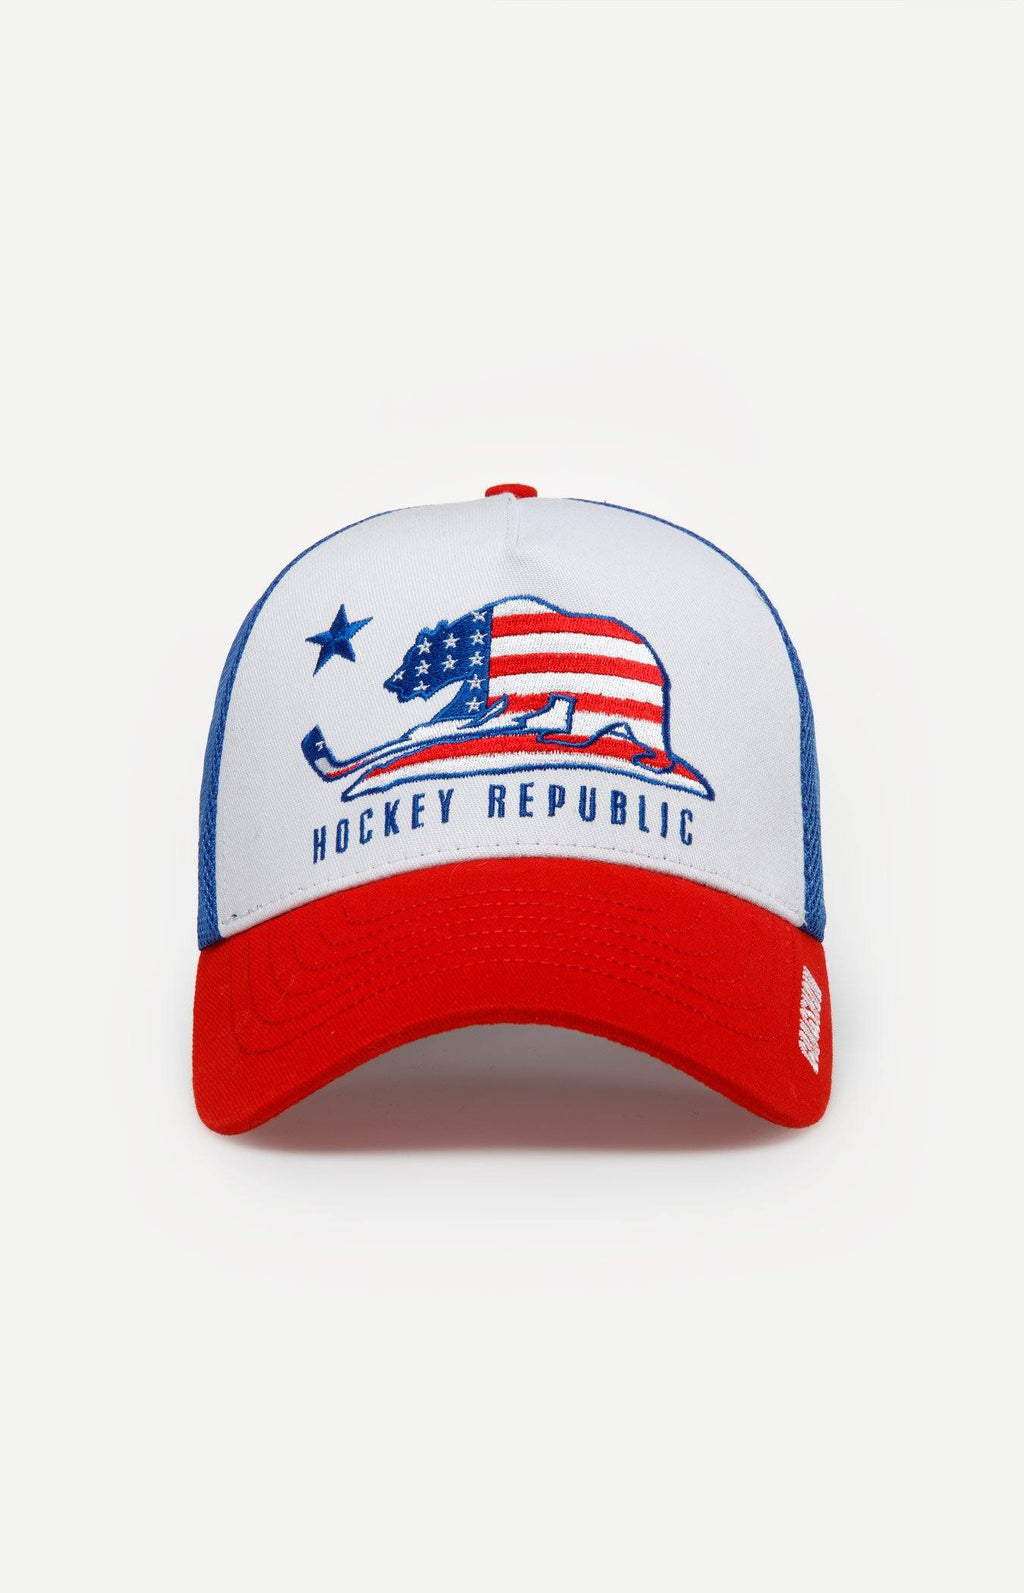 Hockey Republic - USA